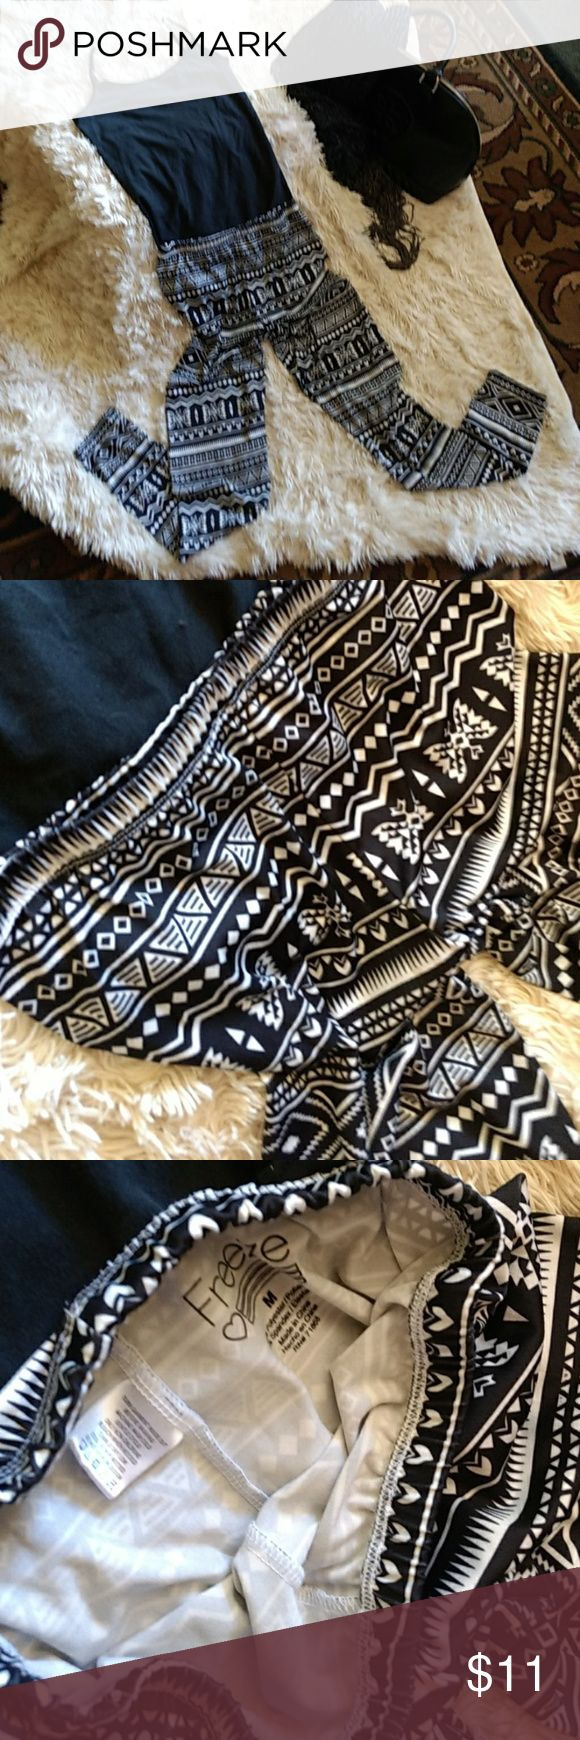 Freeze Aztec legging made of polyester & spandex   They are blackb& white & can be worn dressy with heels & silk top or, casual with flats & tee.  They are lined so, no see thru & truly comfortable as I wore them twice on vacation.😍😍😍🤗🤗🤗🤗🤗😍😍😍😍🤗🤗 Freeze Pants Leggings